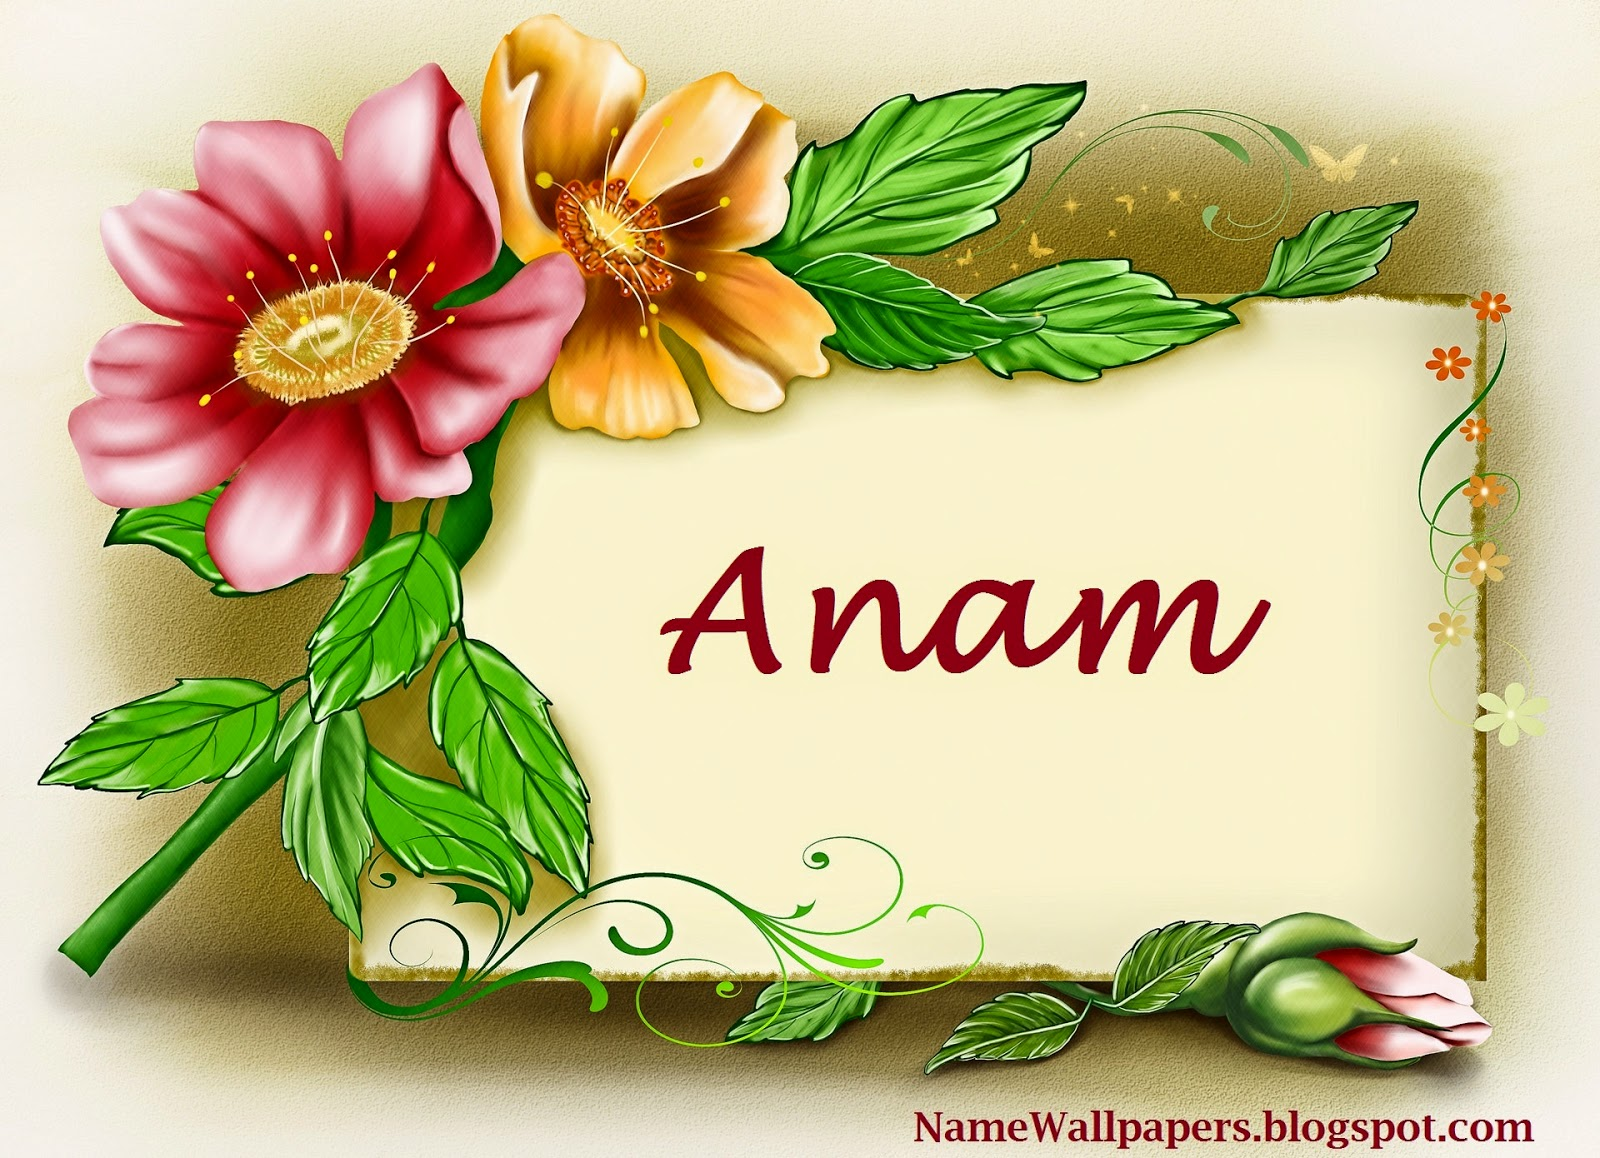 S M Name Wallpaper Anam Name Wallpapers A...